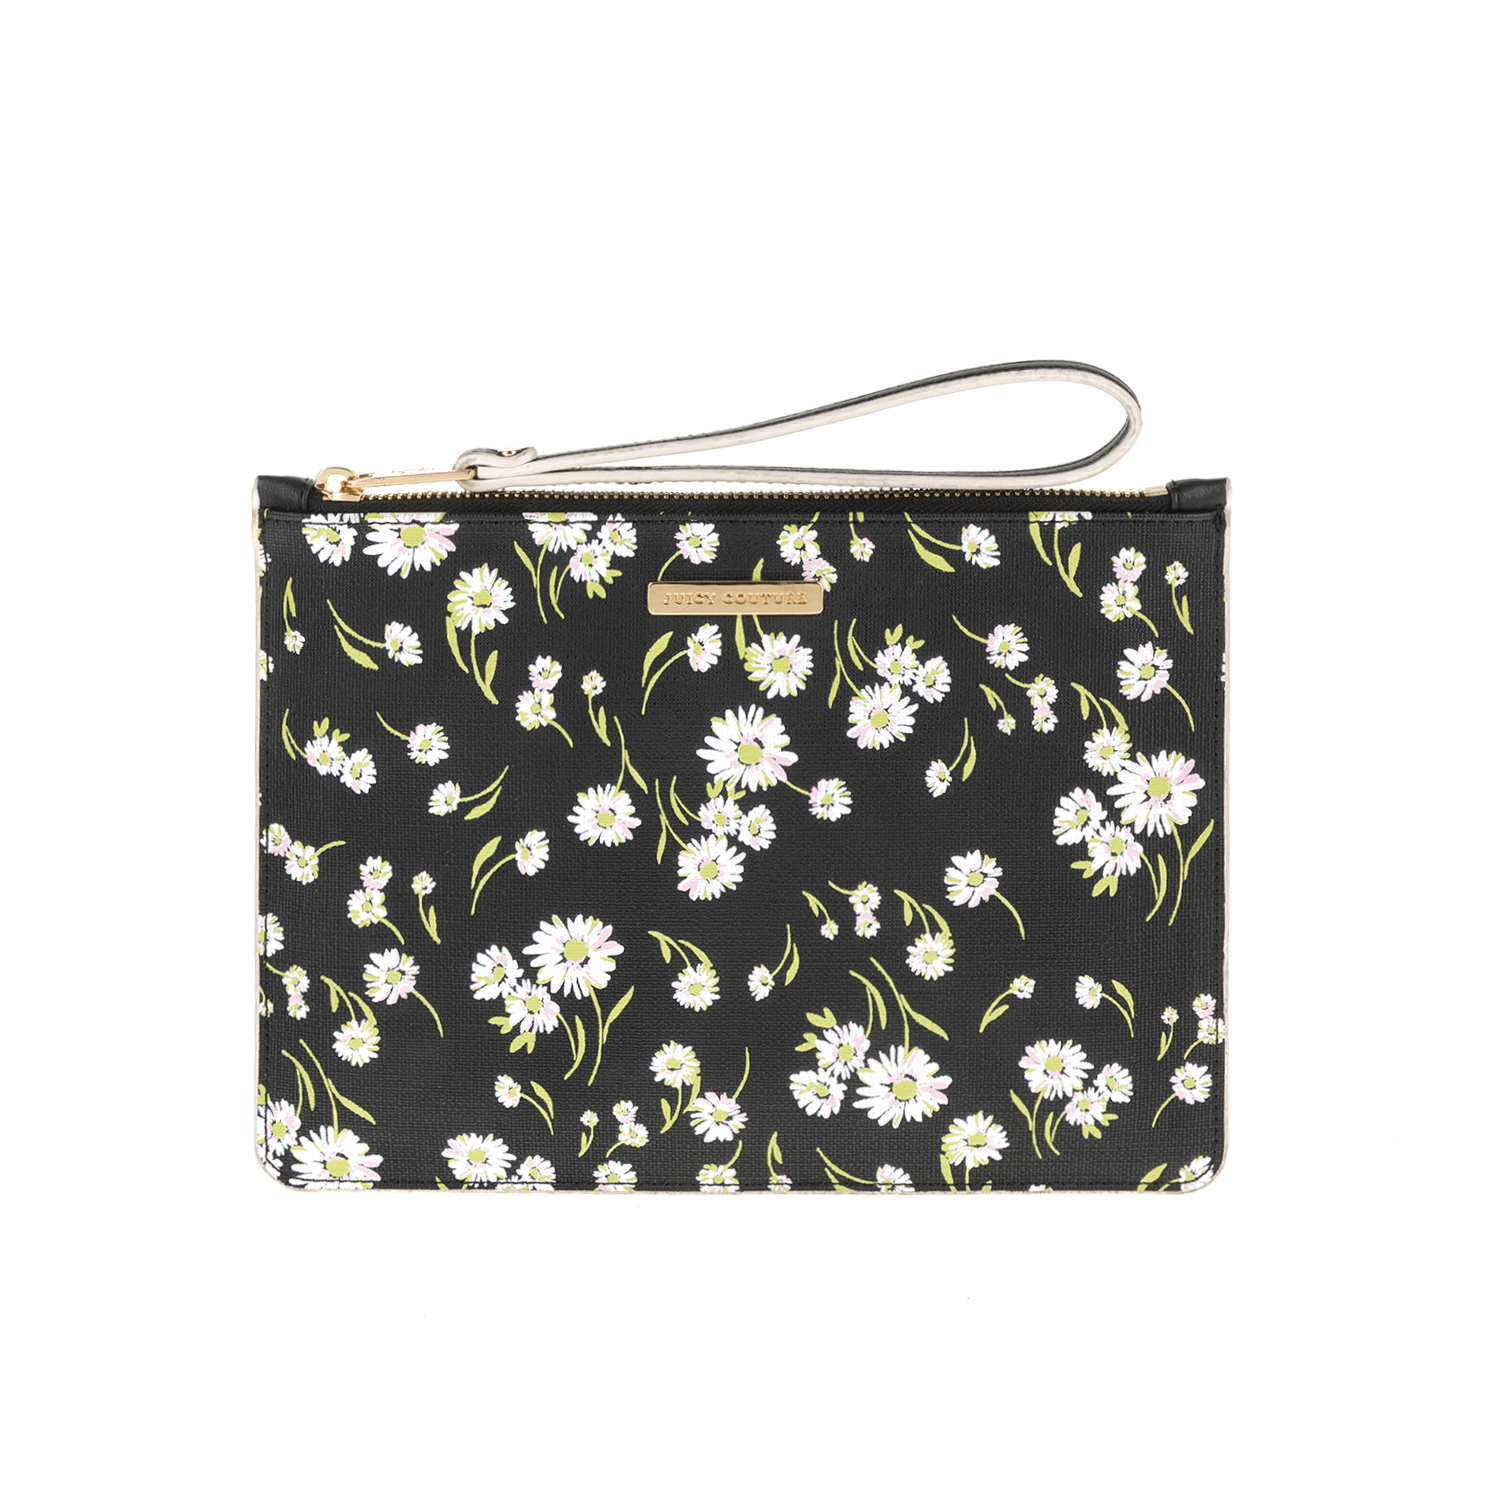 JUICY COUTURE – Τσαντάκι-πορτοφόλι JUICY COUTURE FULLERTON DAISY 1533052.0-7191